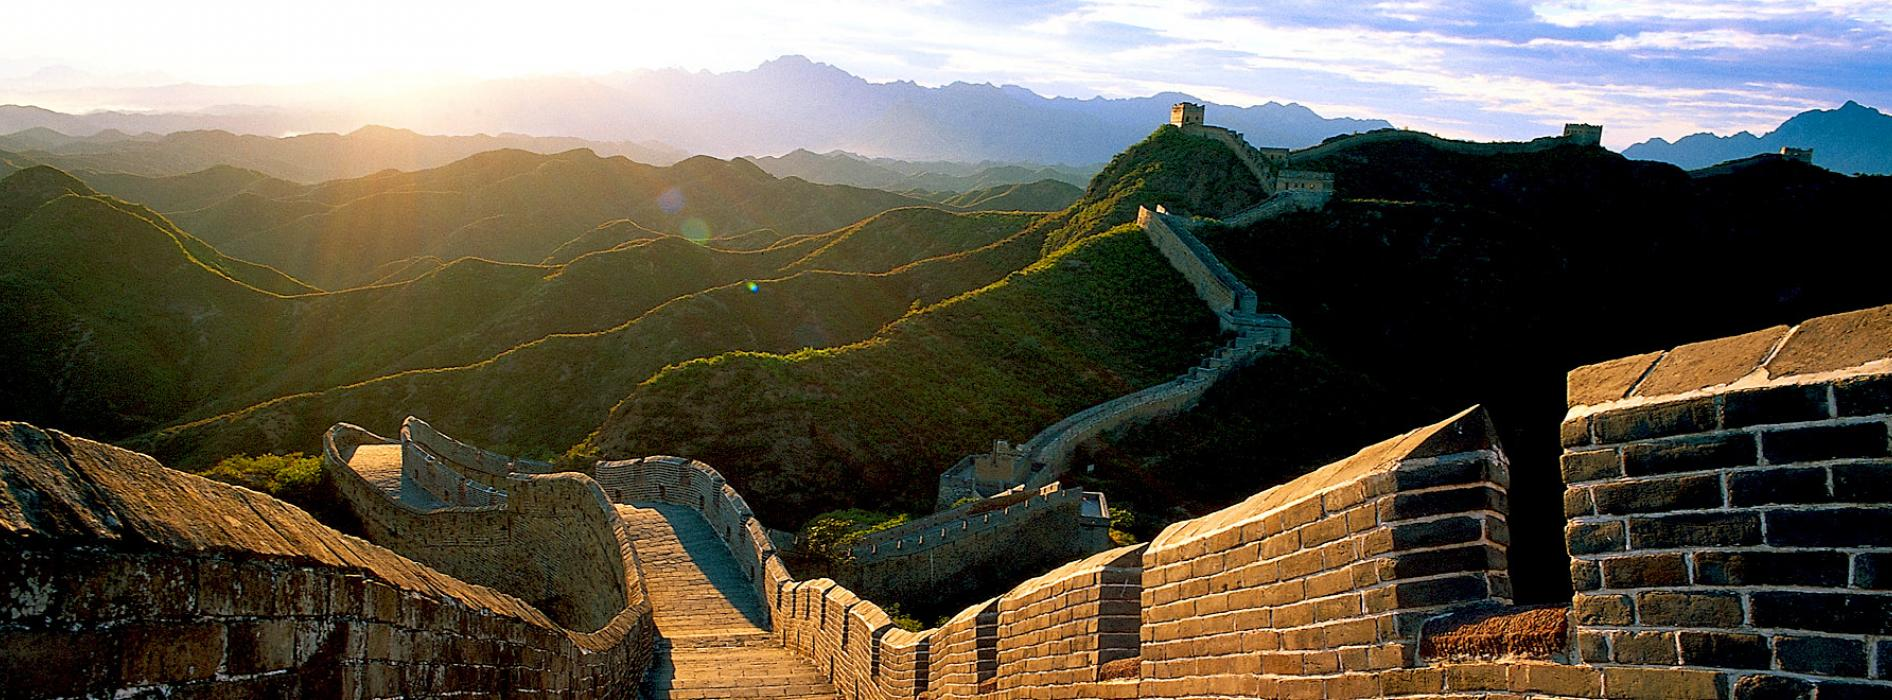 Visit great wall in China | CTS Horizons London.jpg